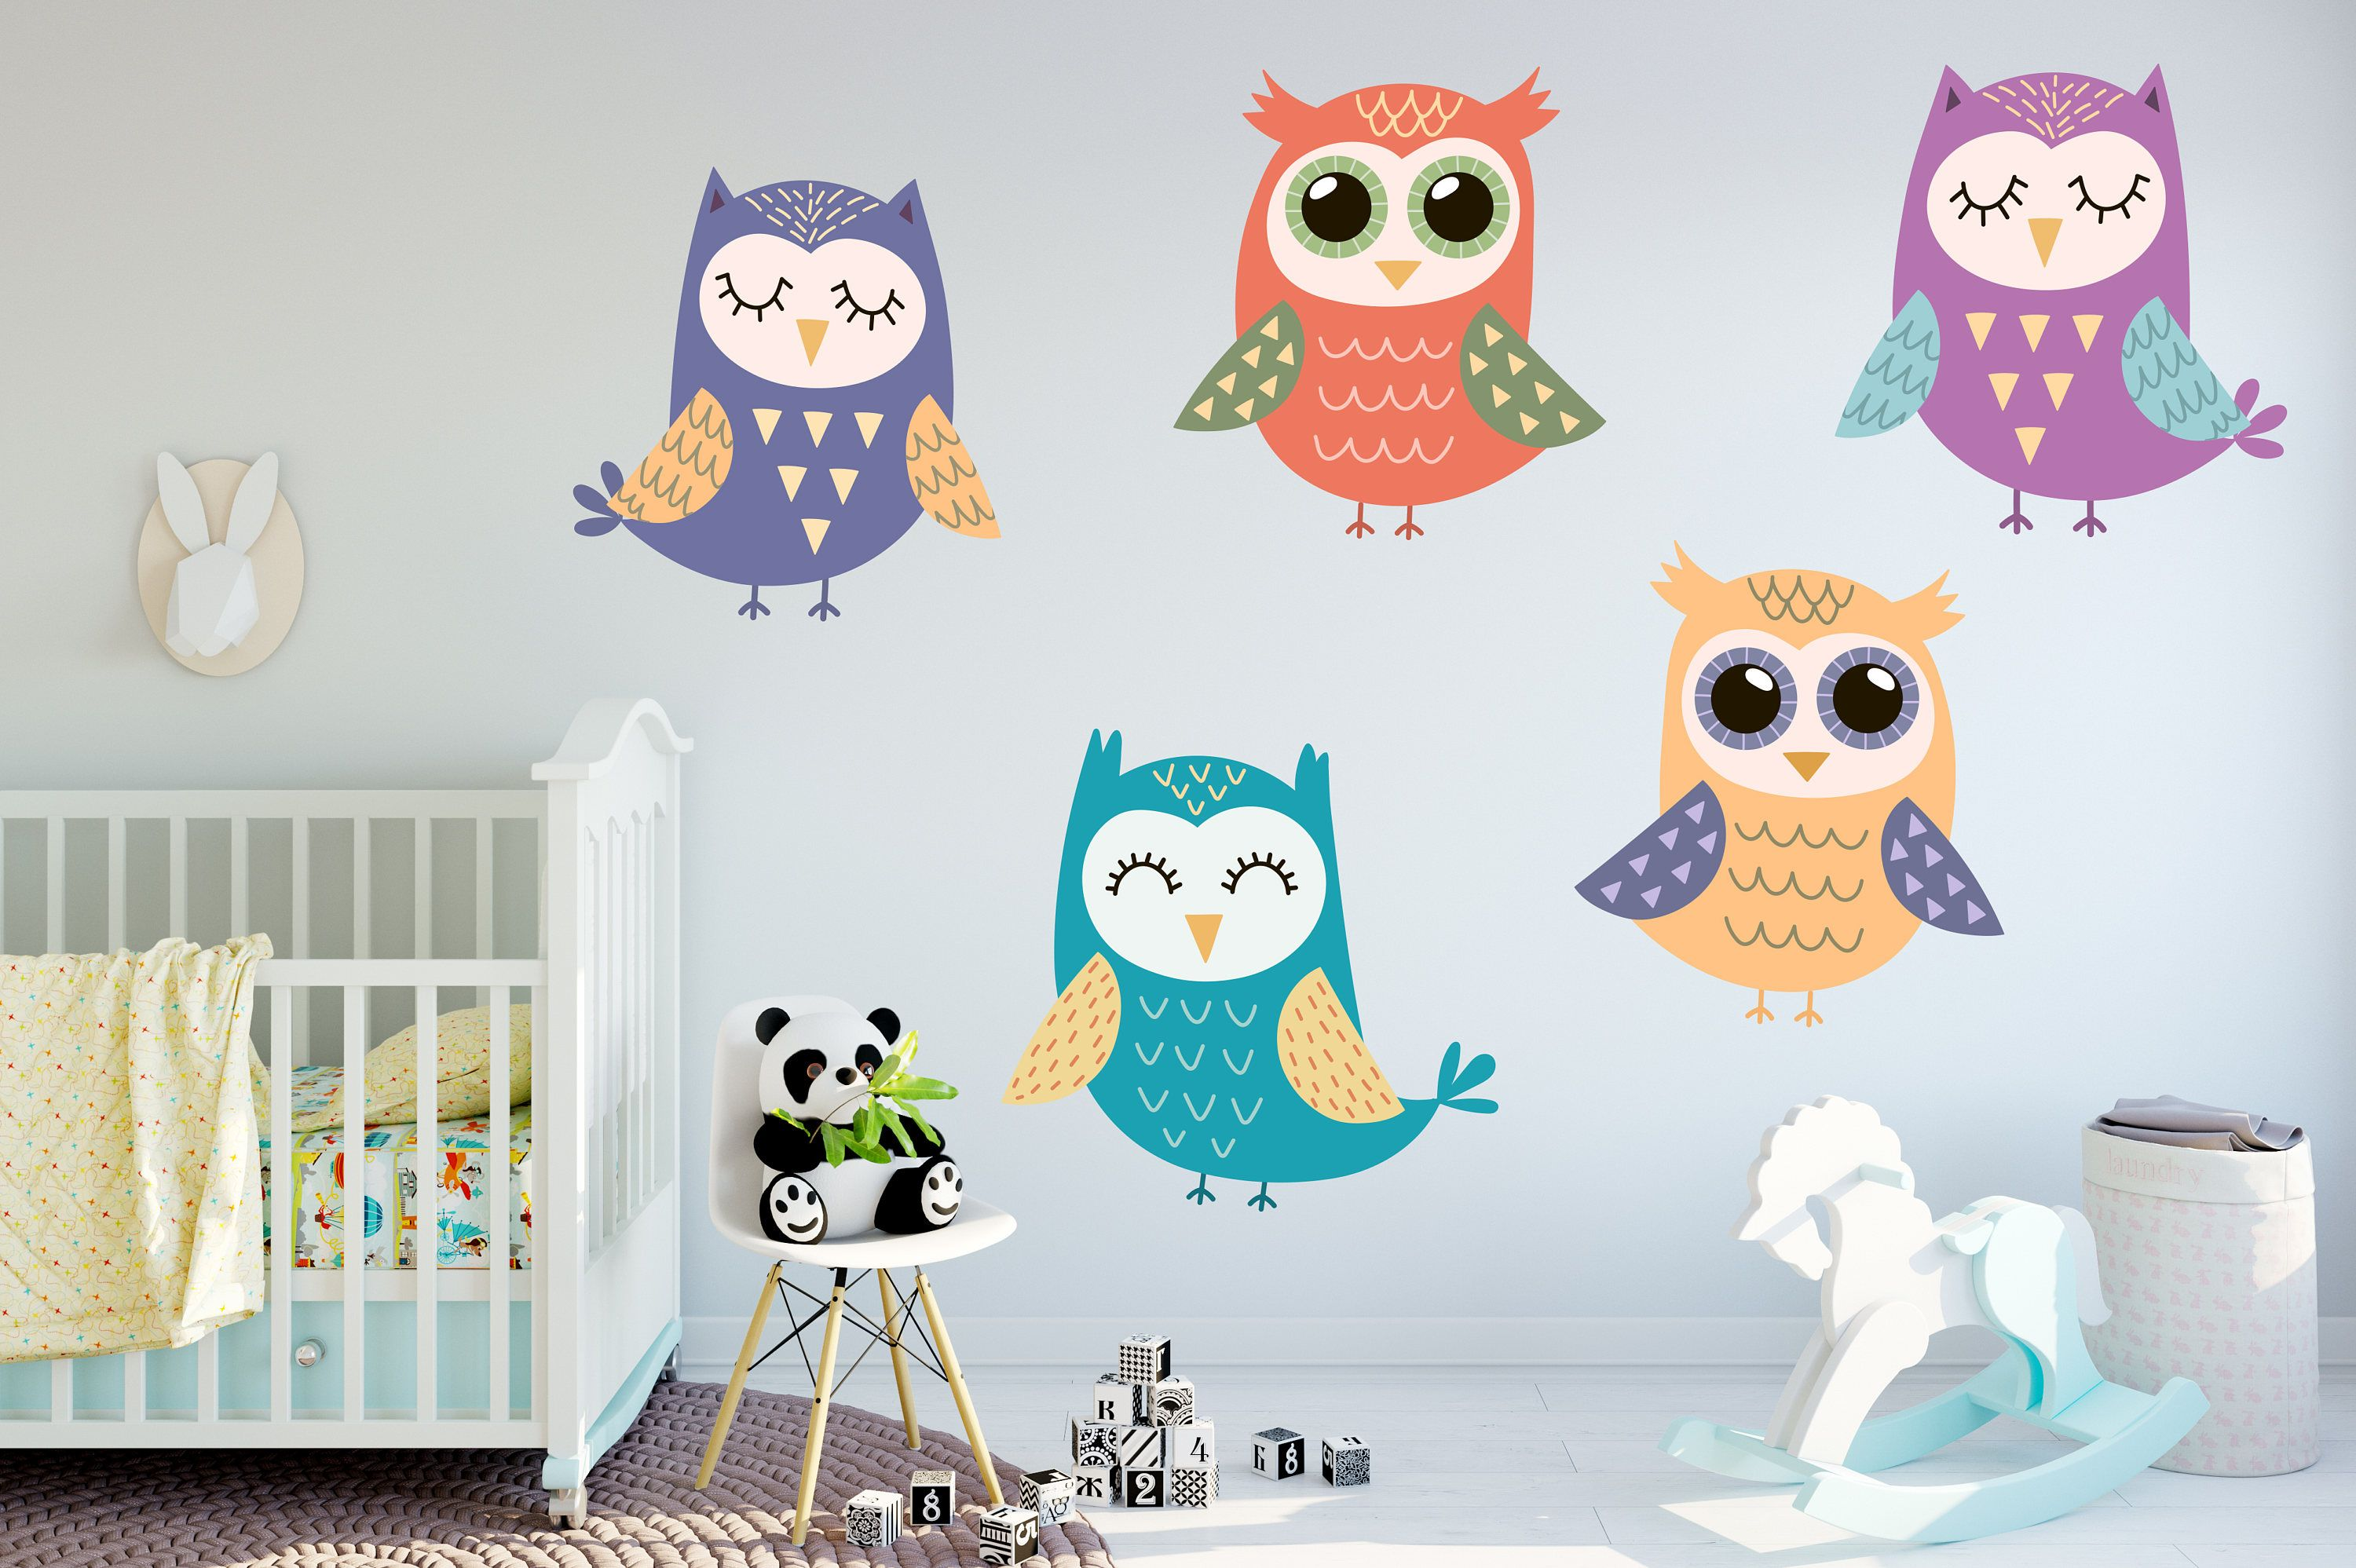 Colorful Owl Wall Decal Set Colorful Owl Stickers Kid S Room